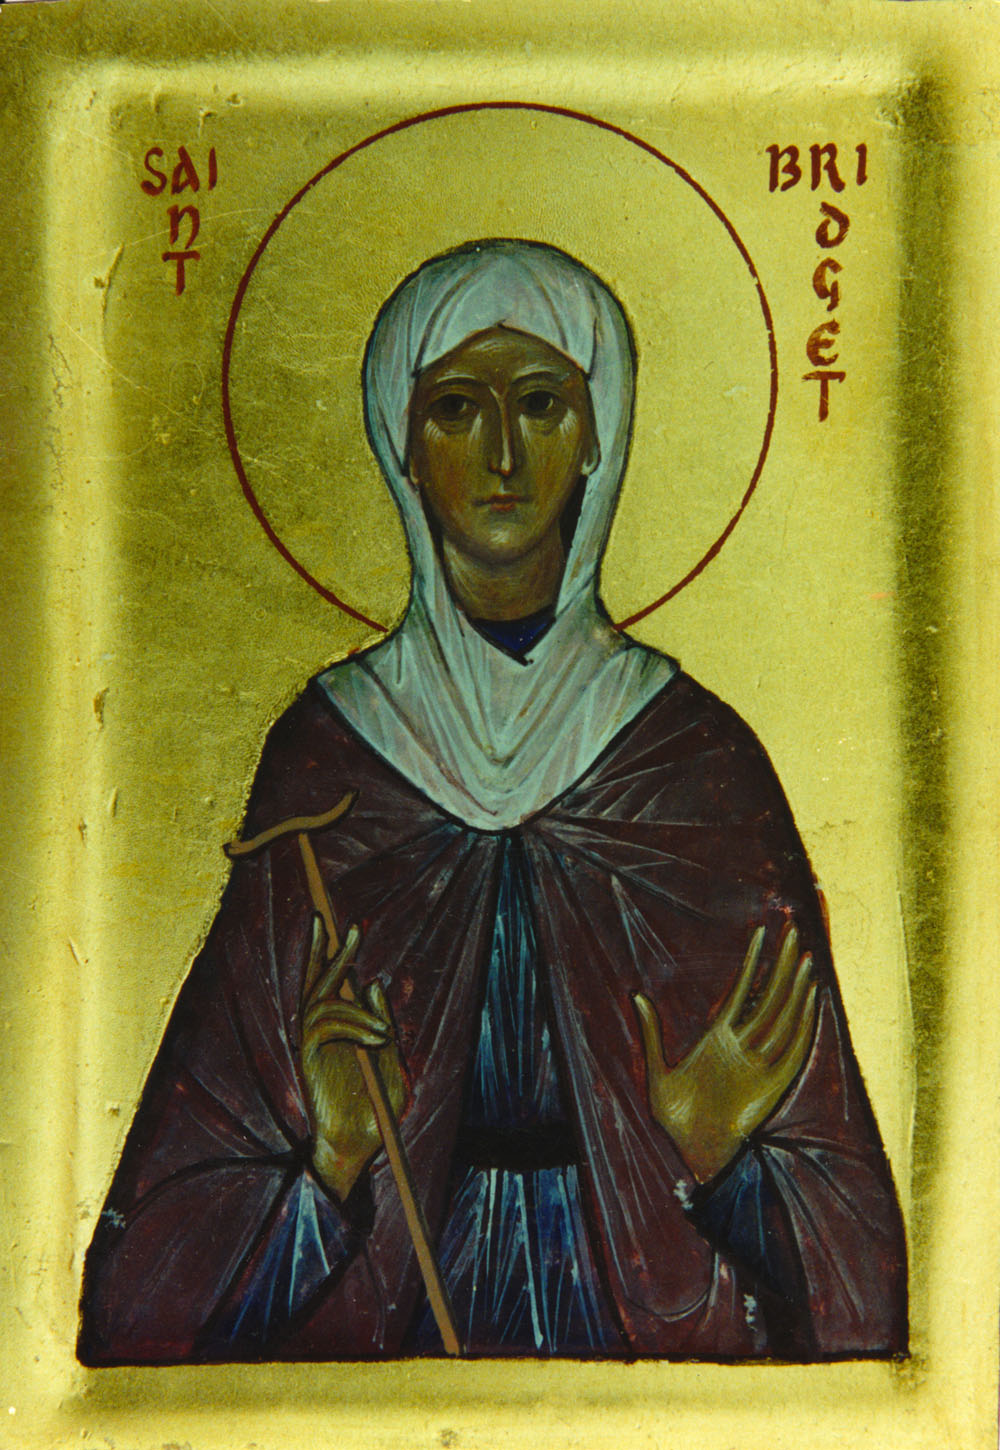 Sf. Bridget-of Kildare